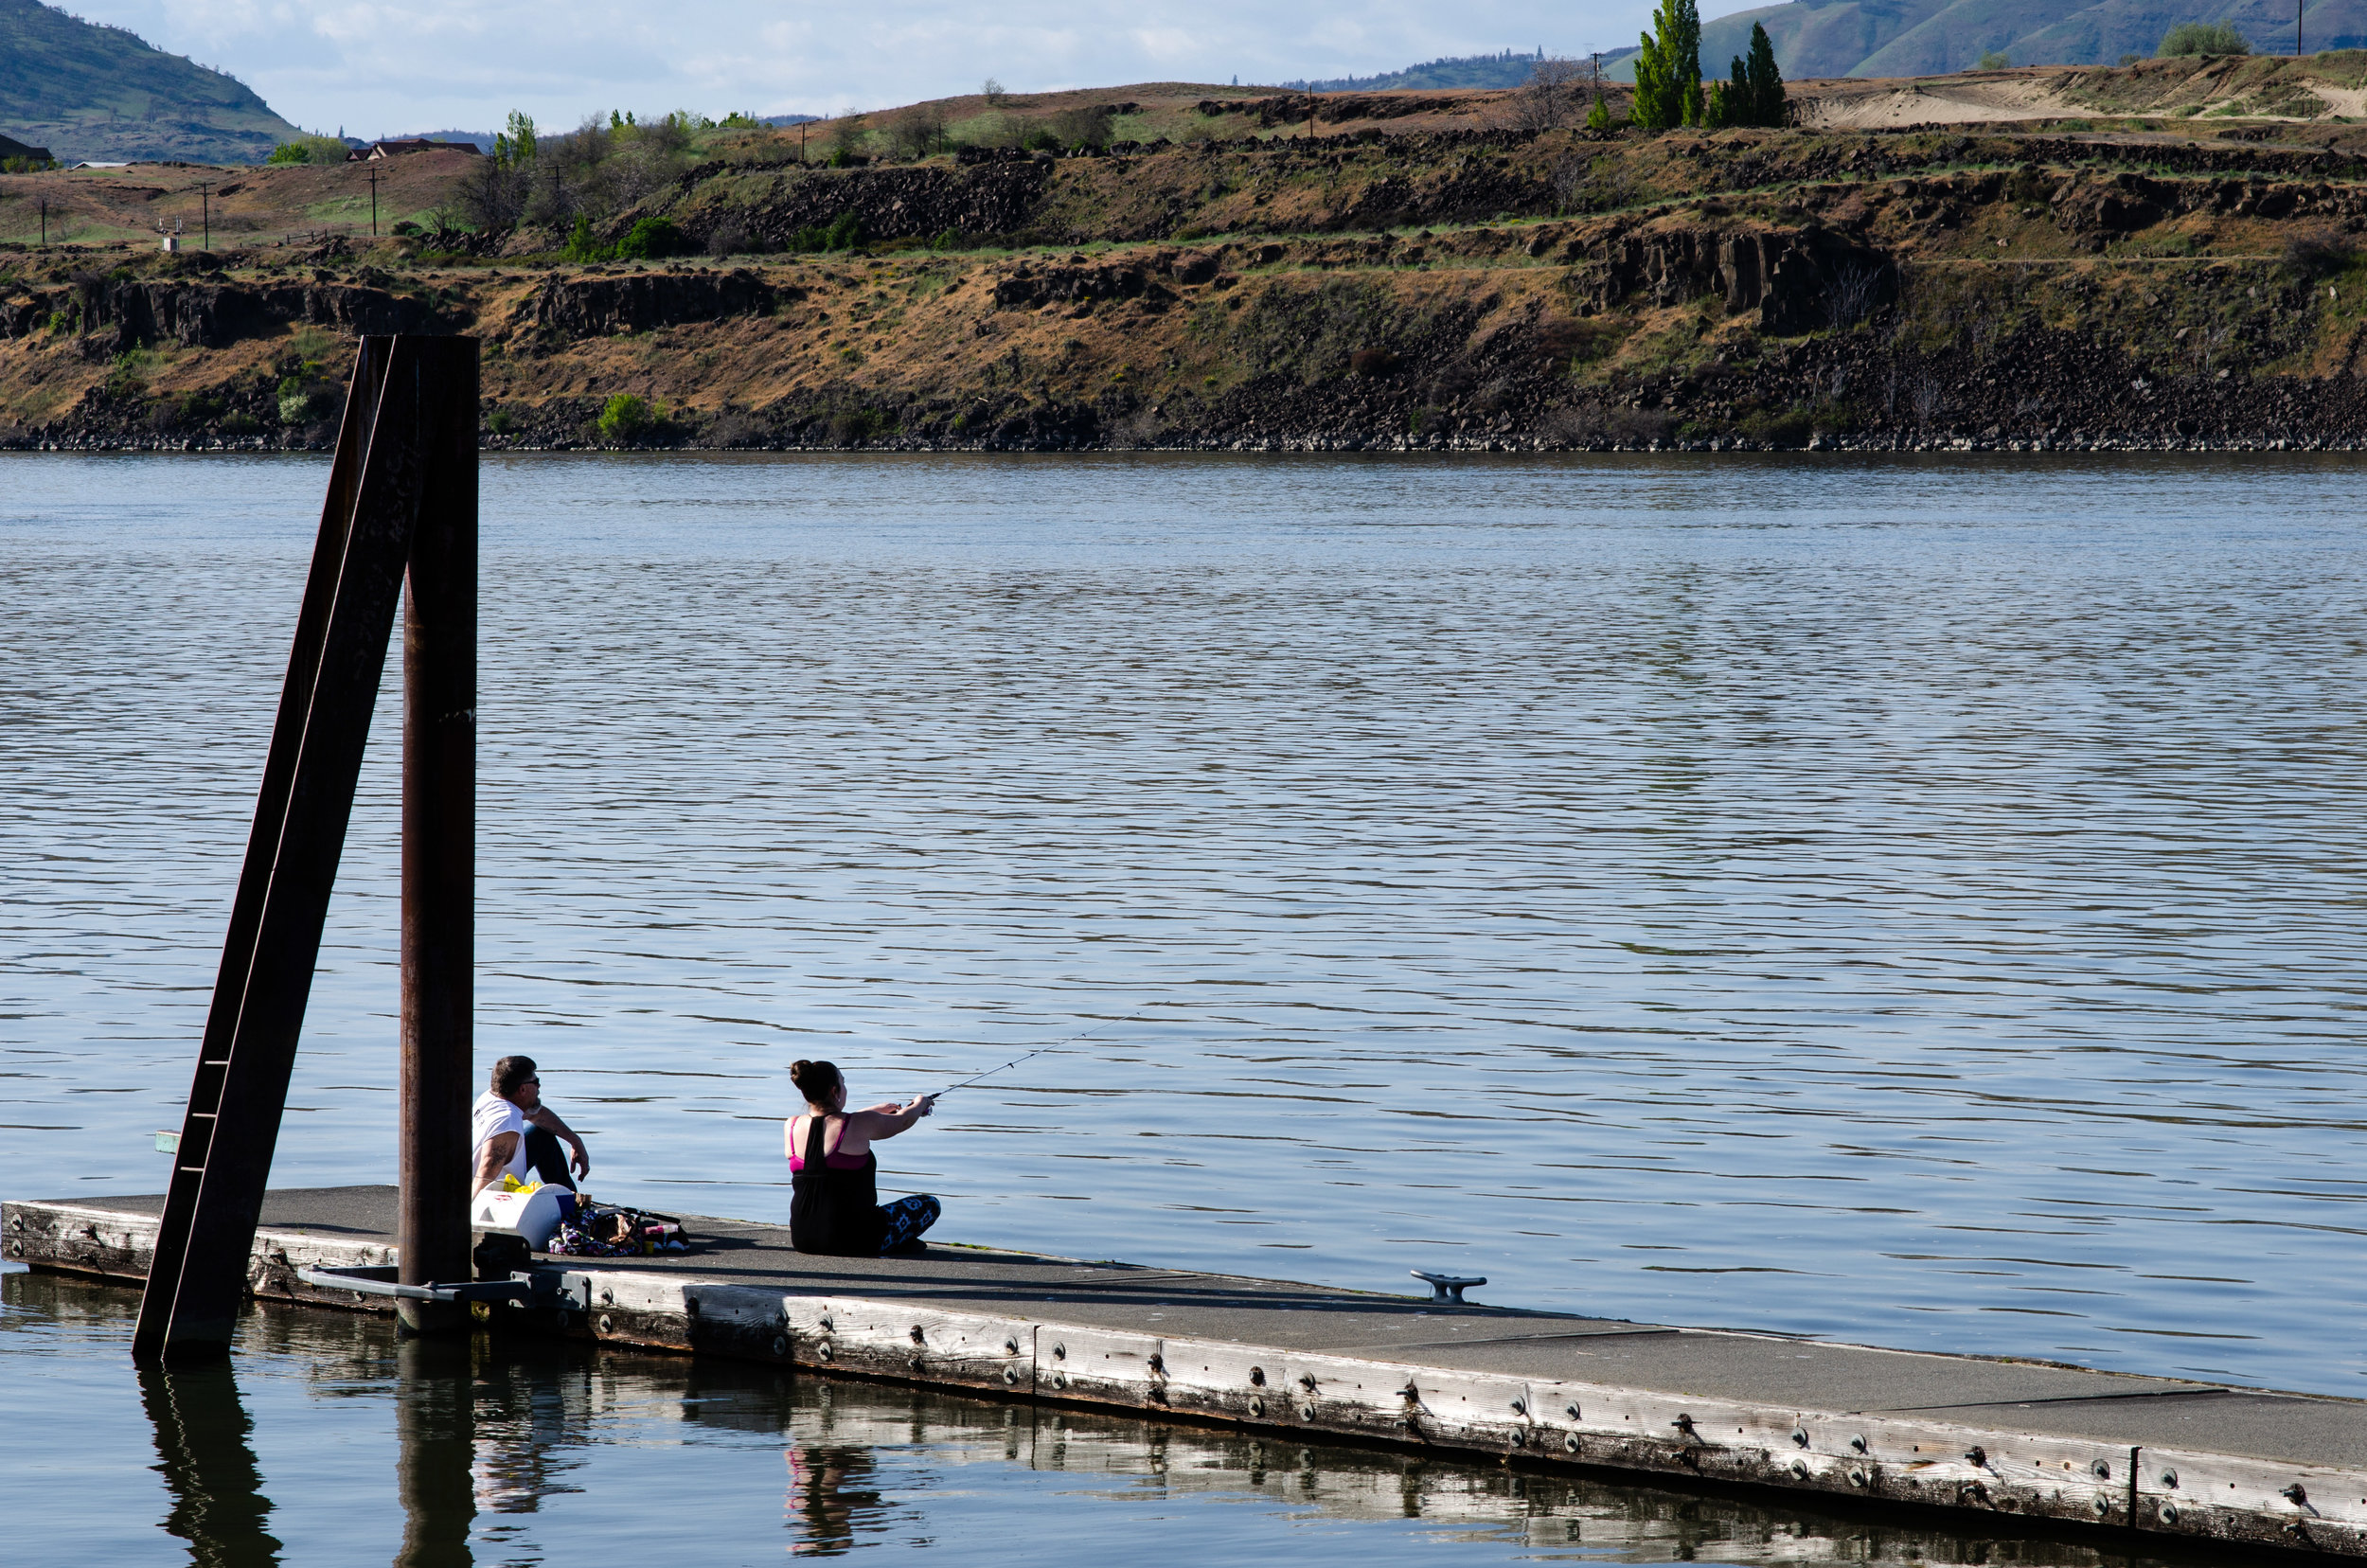 People fishing off the dock at Riverfront Park in The Dalles, Ore. Soil in the Columbia River near the dock is contaminated by pollution from a creosote plant located on shore. The river is home to salmon, steelhead and sturgeon.